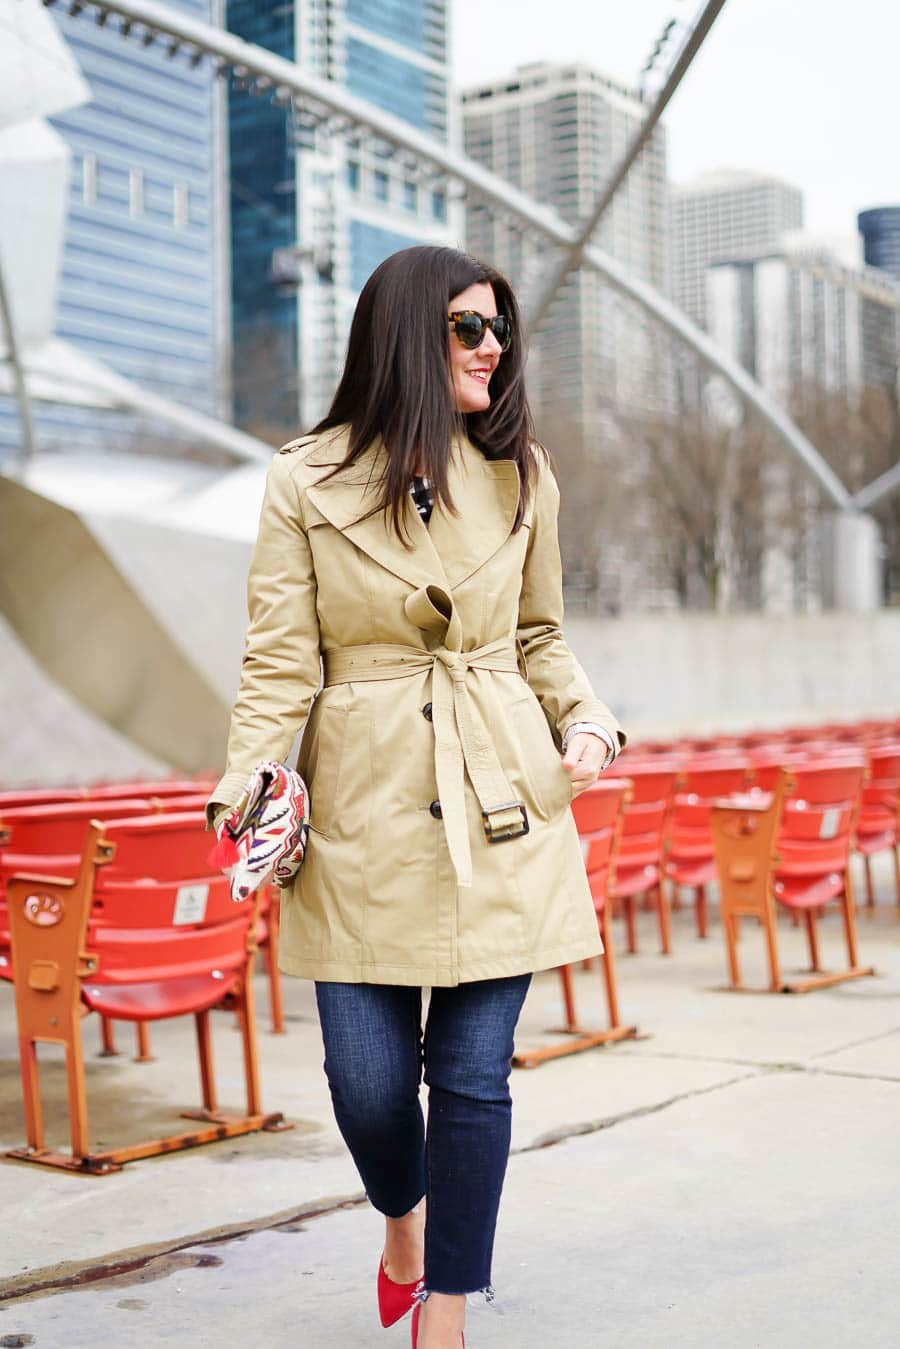 Gap denim, classic trench coat, banana republic trench coat, banana republic gingham off the shoulder top, red suede heels, a lily love affair, Chicago blogger, spring style, transitional style